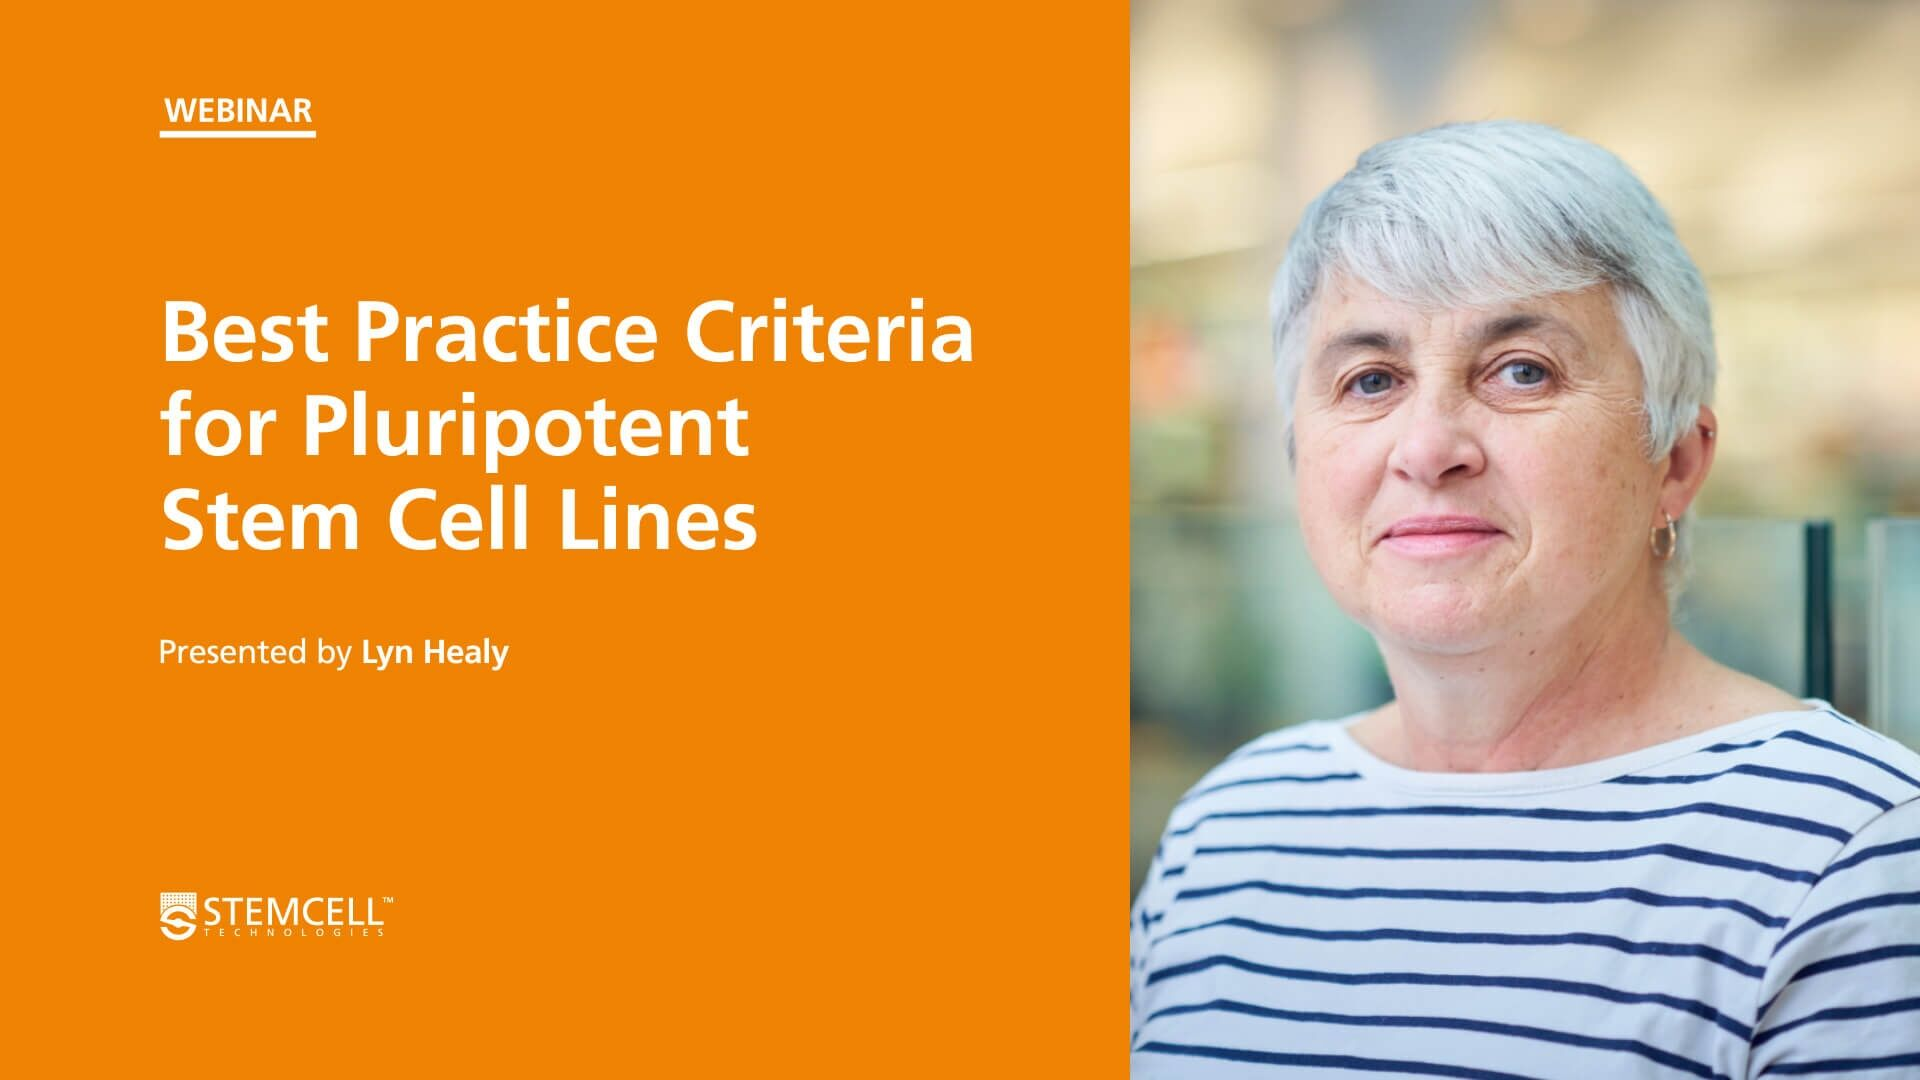 Best Practice Criteria for Pluripotent Stem Cell Lines